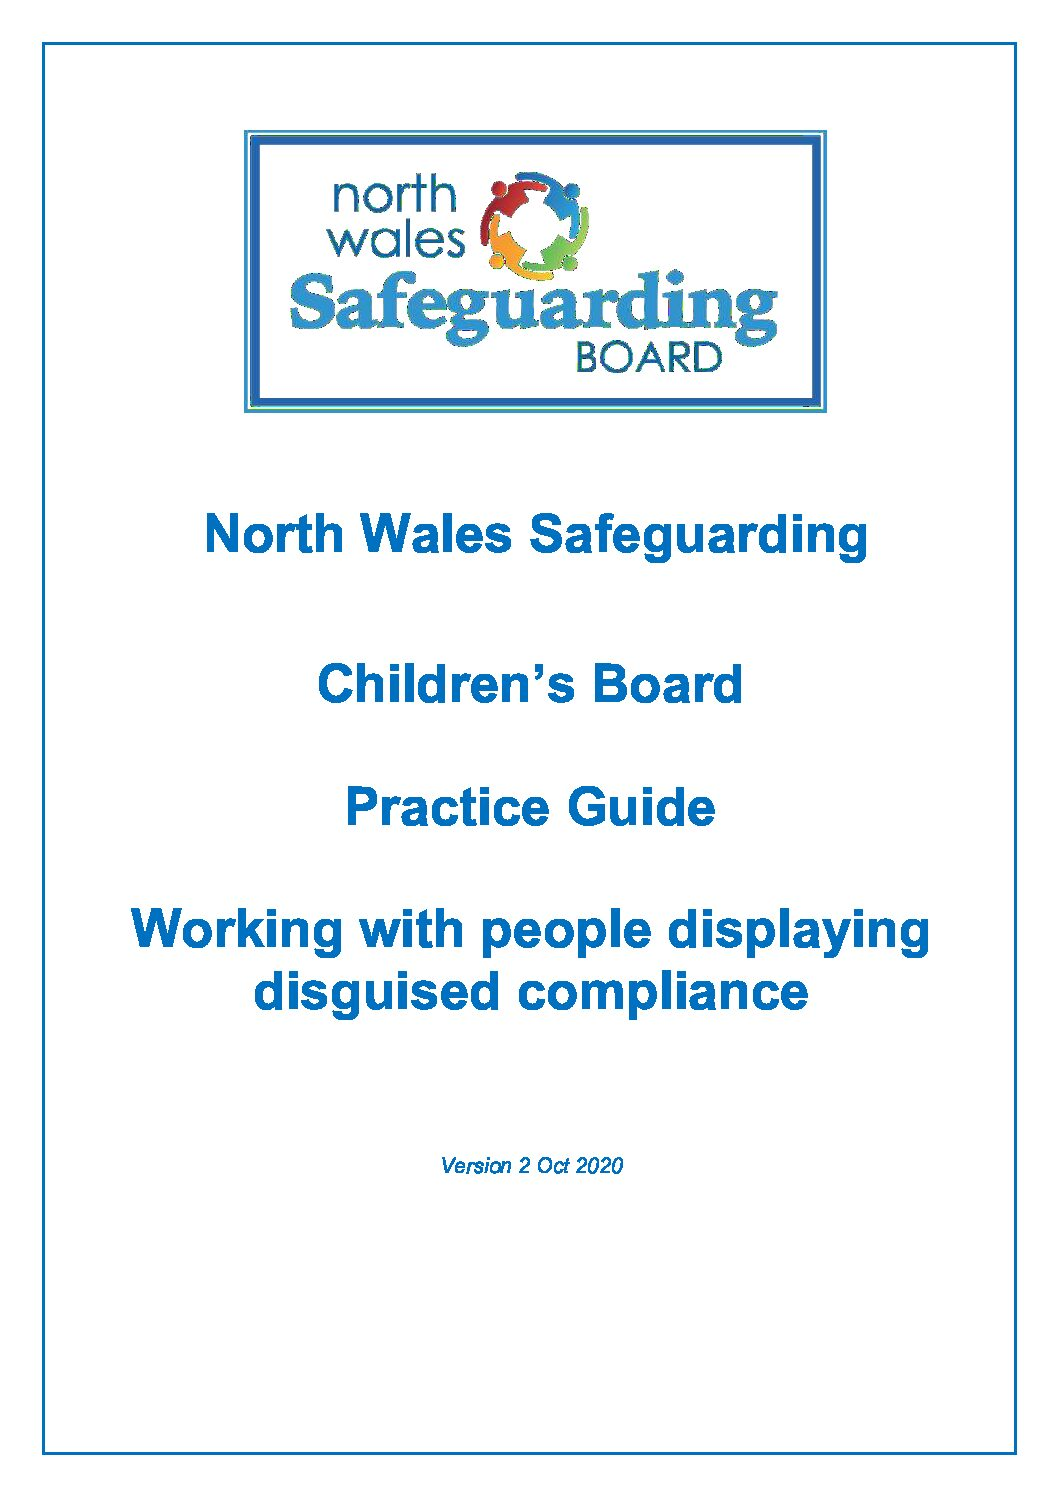 North Wales Practice Guide Working with people displaying disguised compliance